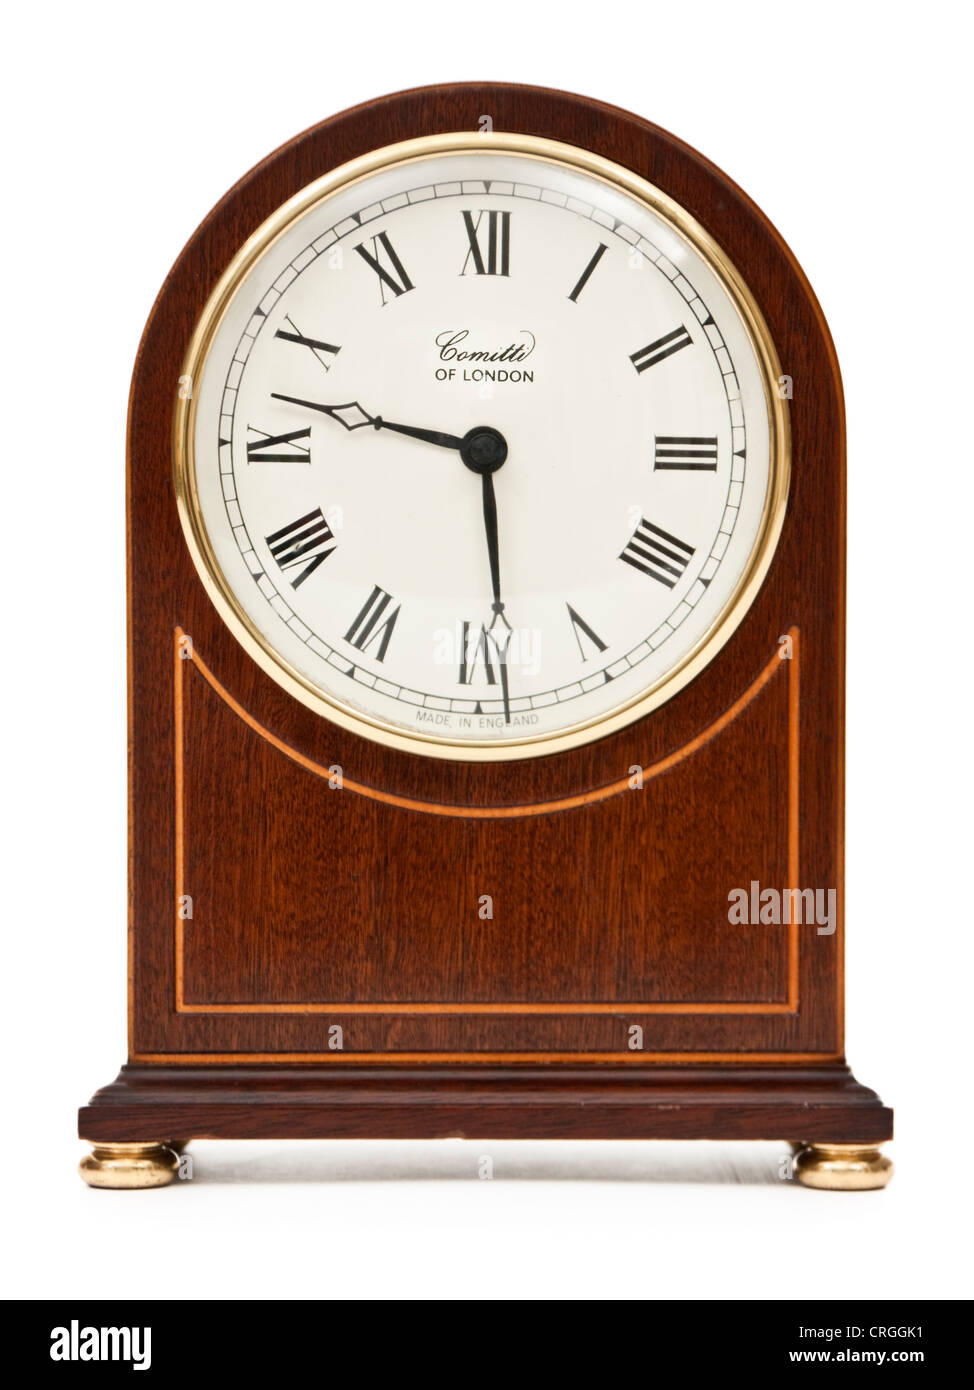 Comitti of london mantel clock stock photo royalty free image comitti of london mantel clock amipublicfo Images